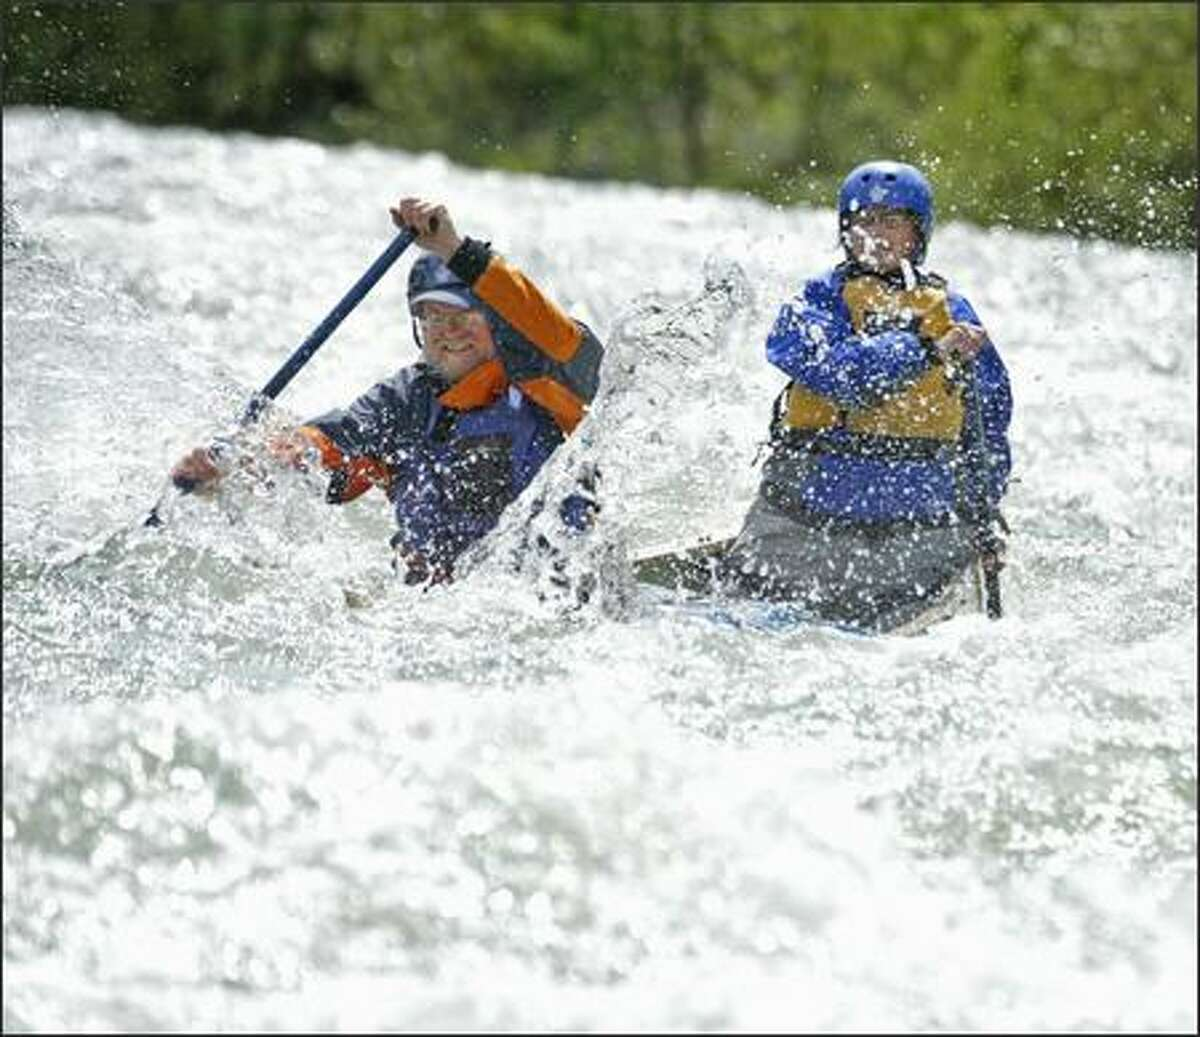 Jim and Kathy Greenleaf work the rapids on the Middle Fork. Flotation bags in the canoe keep it afloat if swamped.